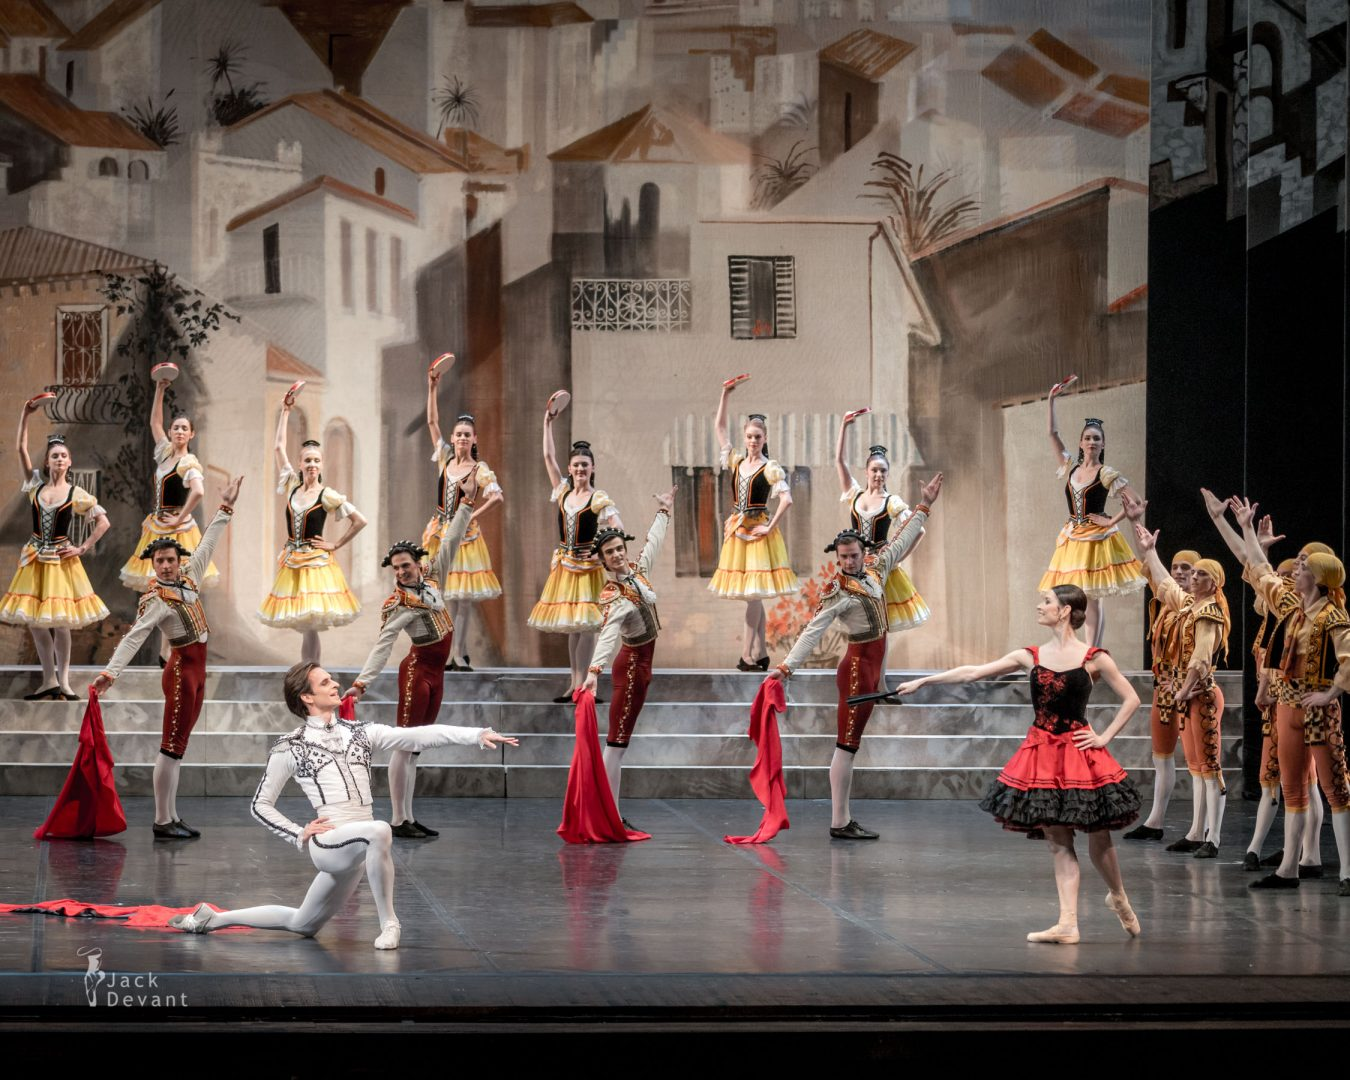 Valeria Mukhanova as a Street Dancer and Ivan Mikhalev as Espada in Don Quixote